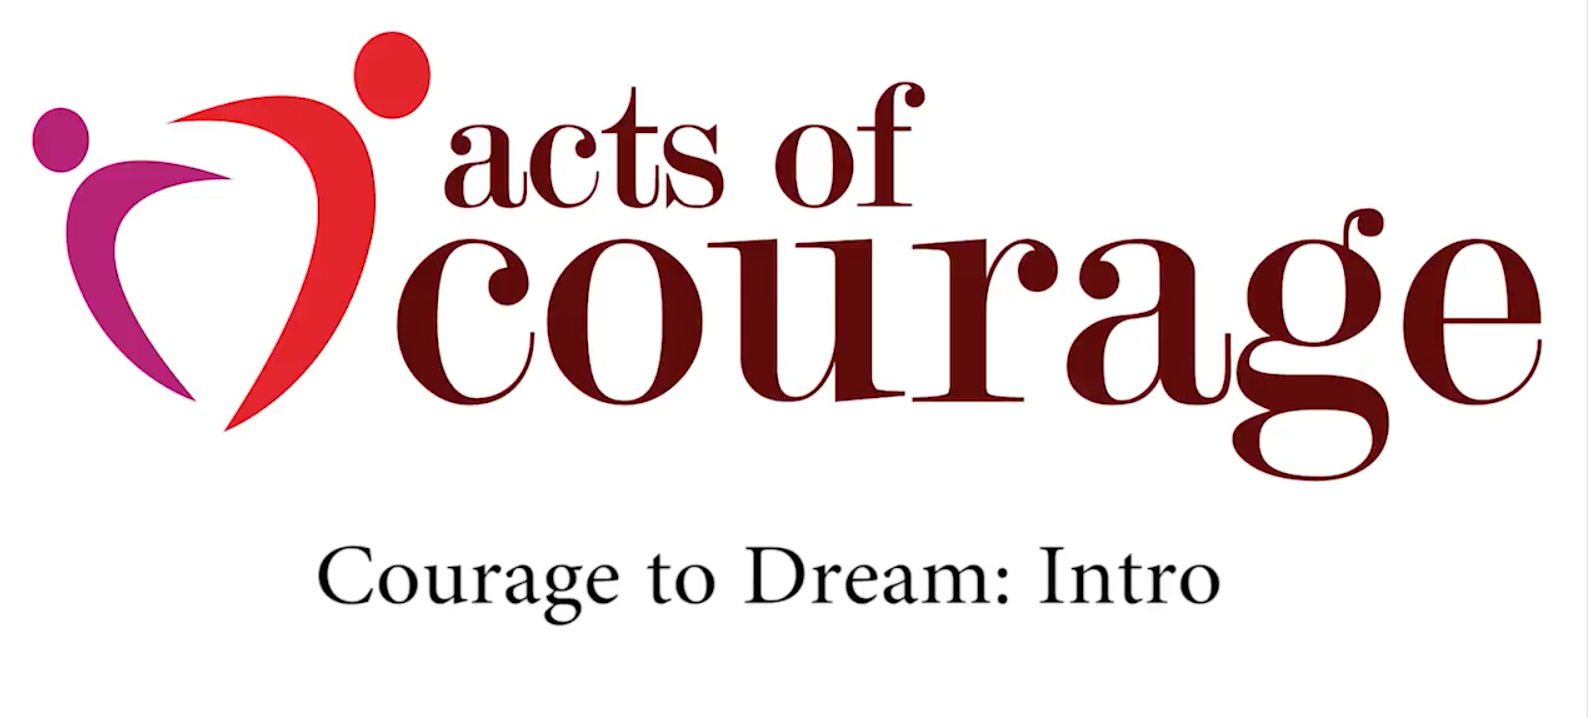 introduction to courage Courage courage, courage can be defined by many things, people, and actions but courage to me is defined the mind, or the spirit of one individual that allows one to face danger, difficulty, or pain without fear.